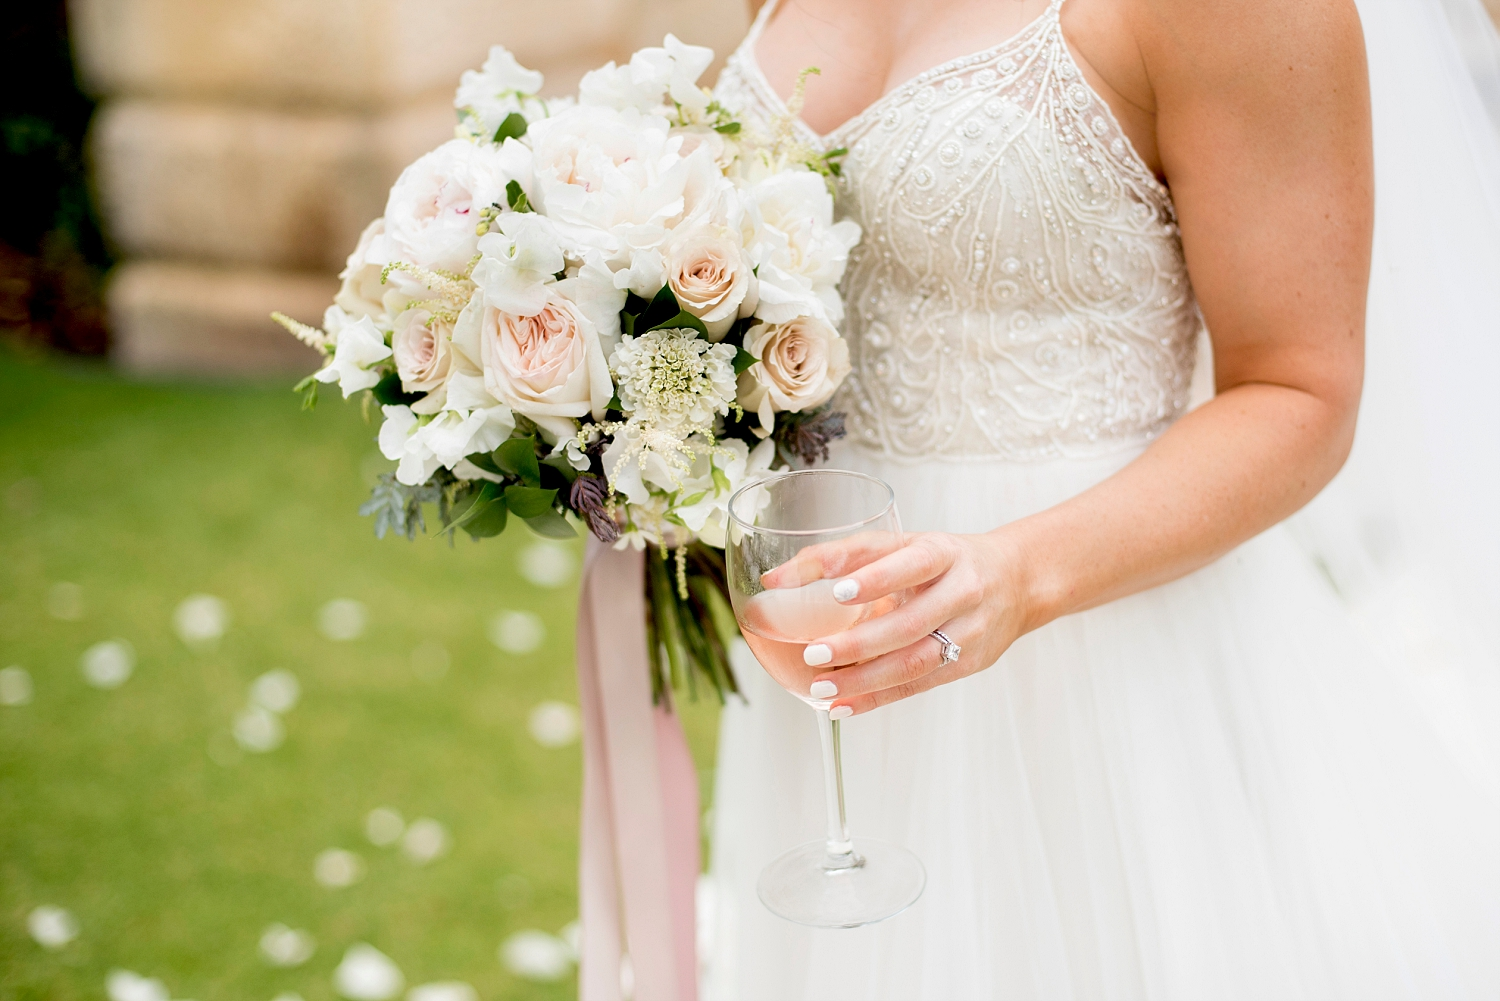 25_cmatthew landers florist wedding perth.jpg